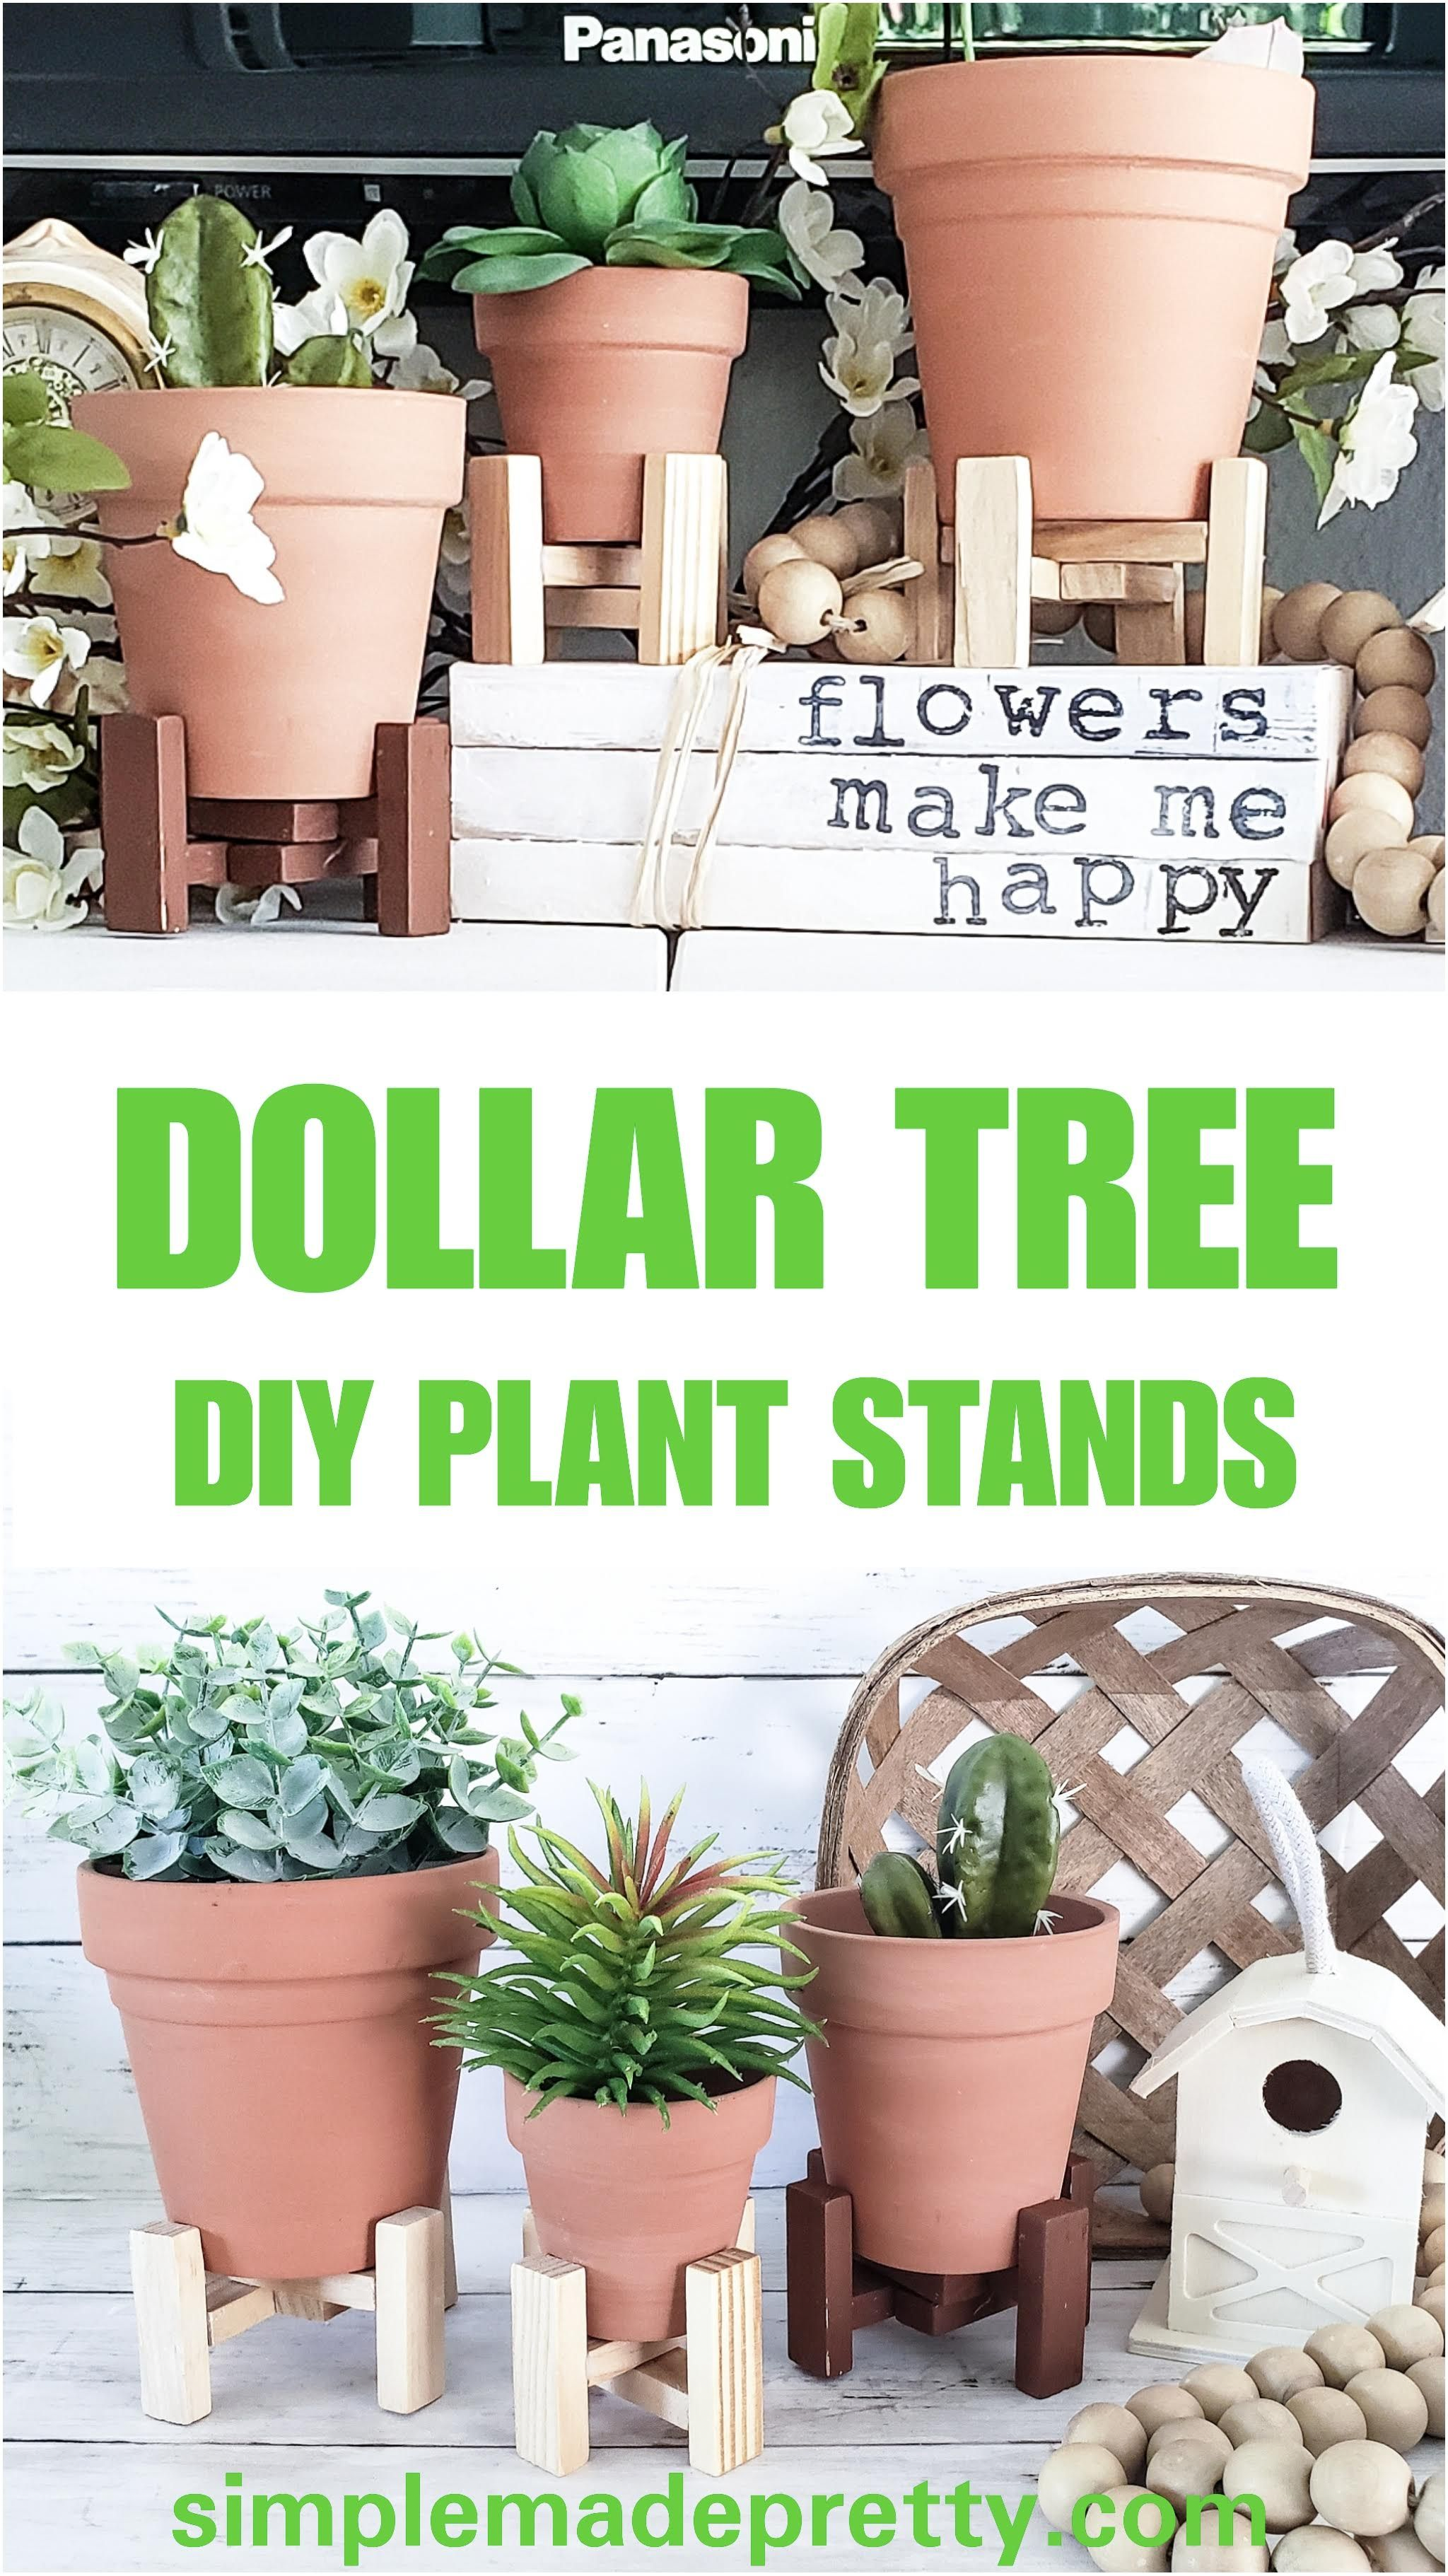 DIY Dollar Tree Plant Stands